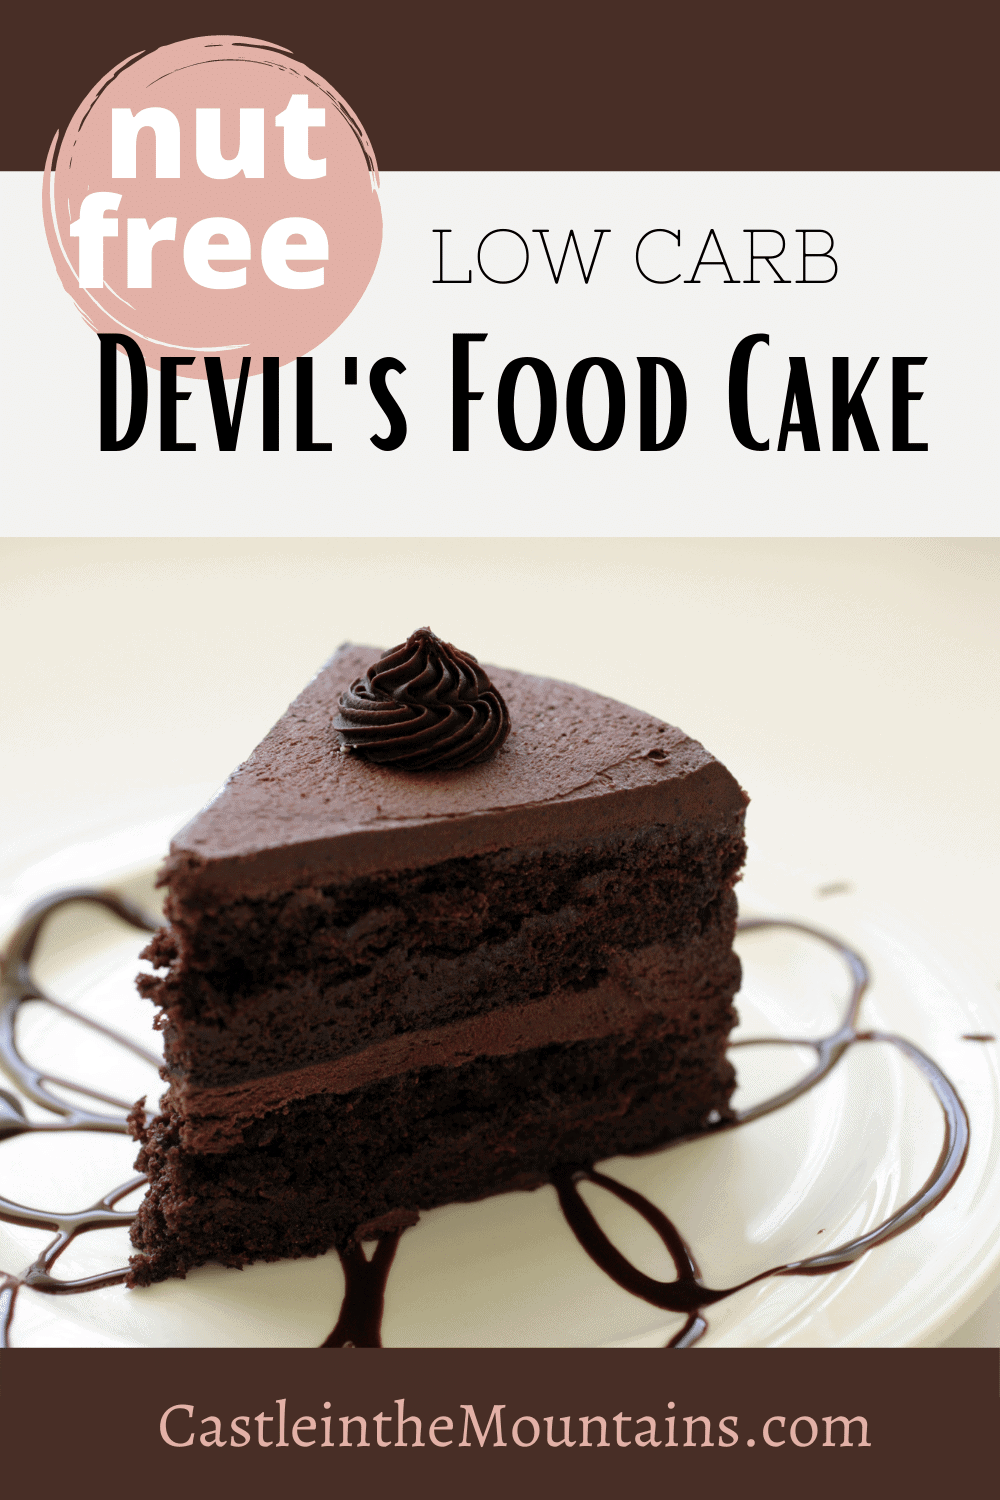 Nut Free Devil\'s Food Cake -How to make a Nut Free Keto Cake